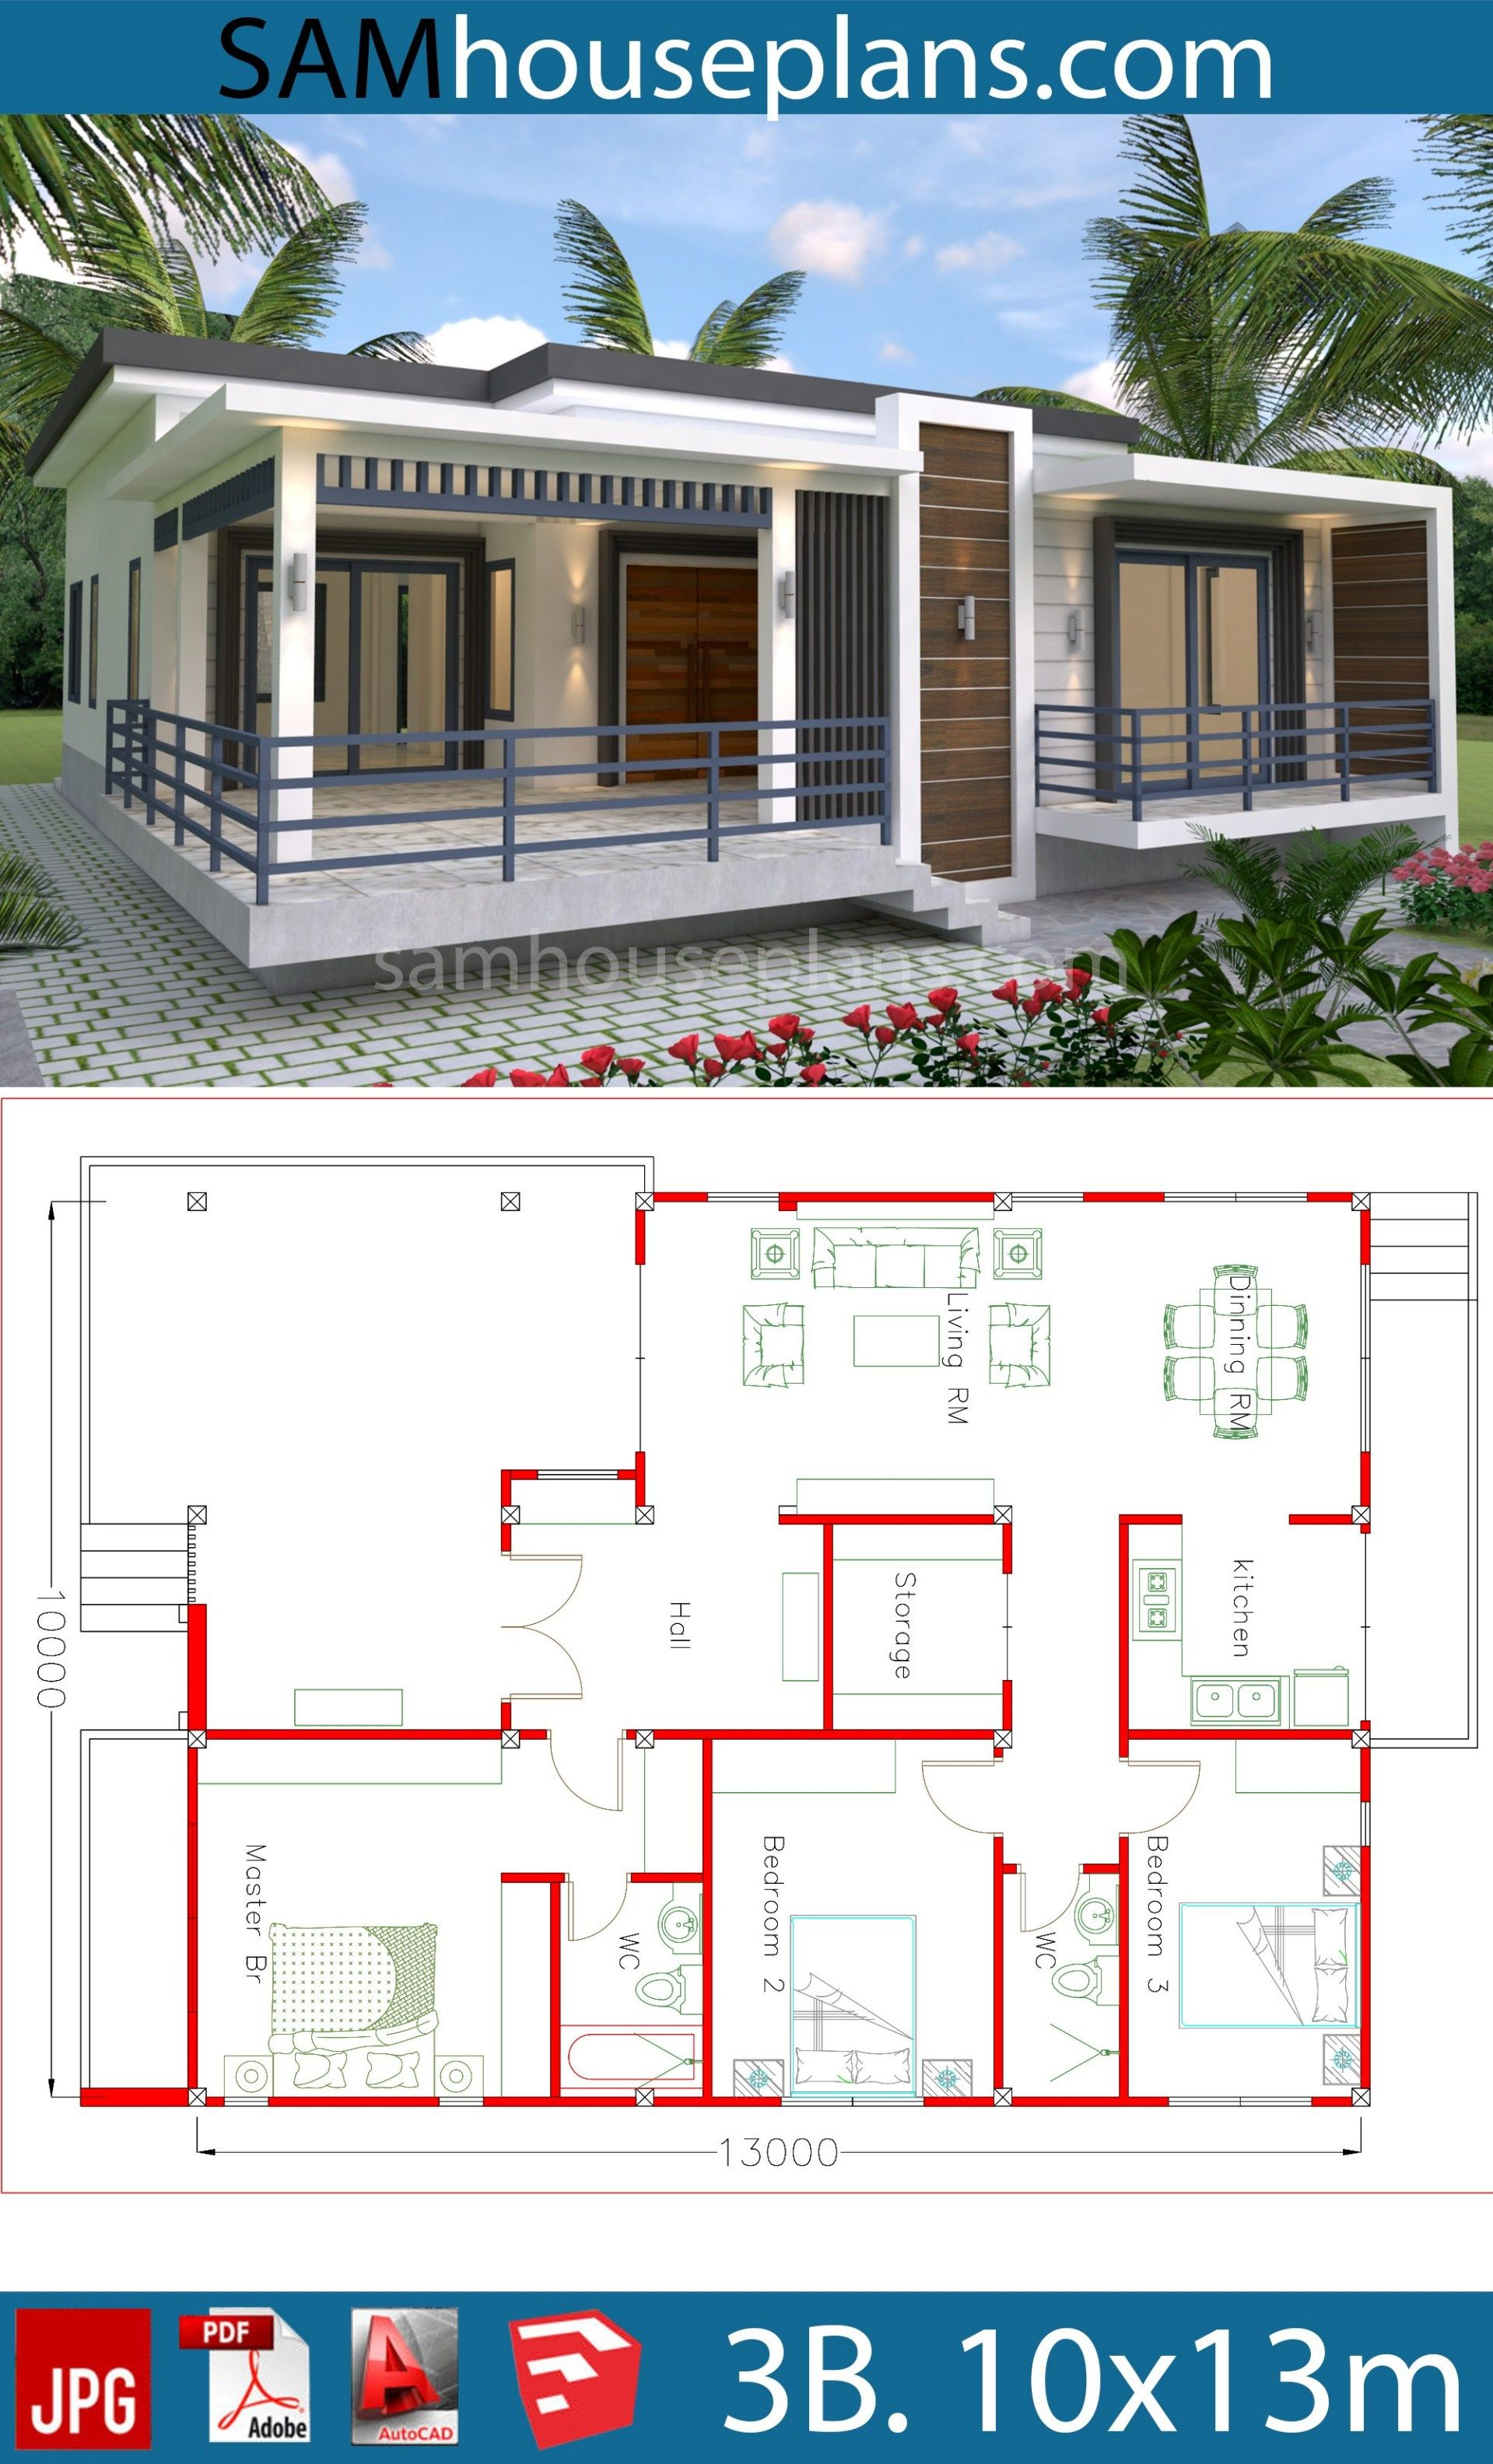 House Plans 10x13m With 3 Bedrooms Sam House Plans Modern